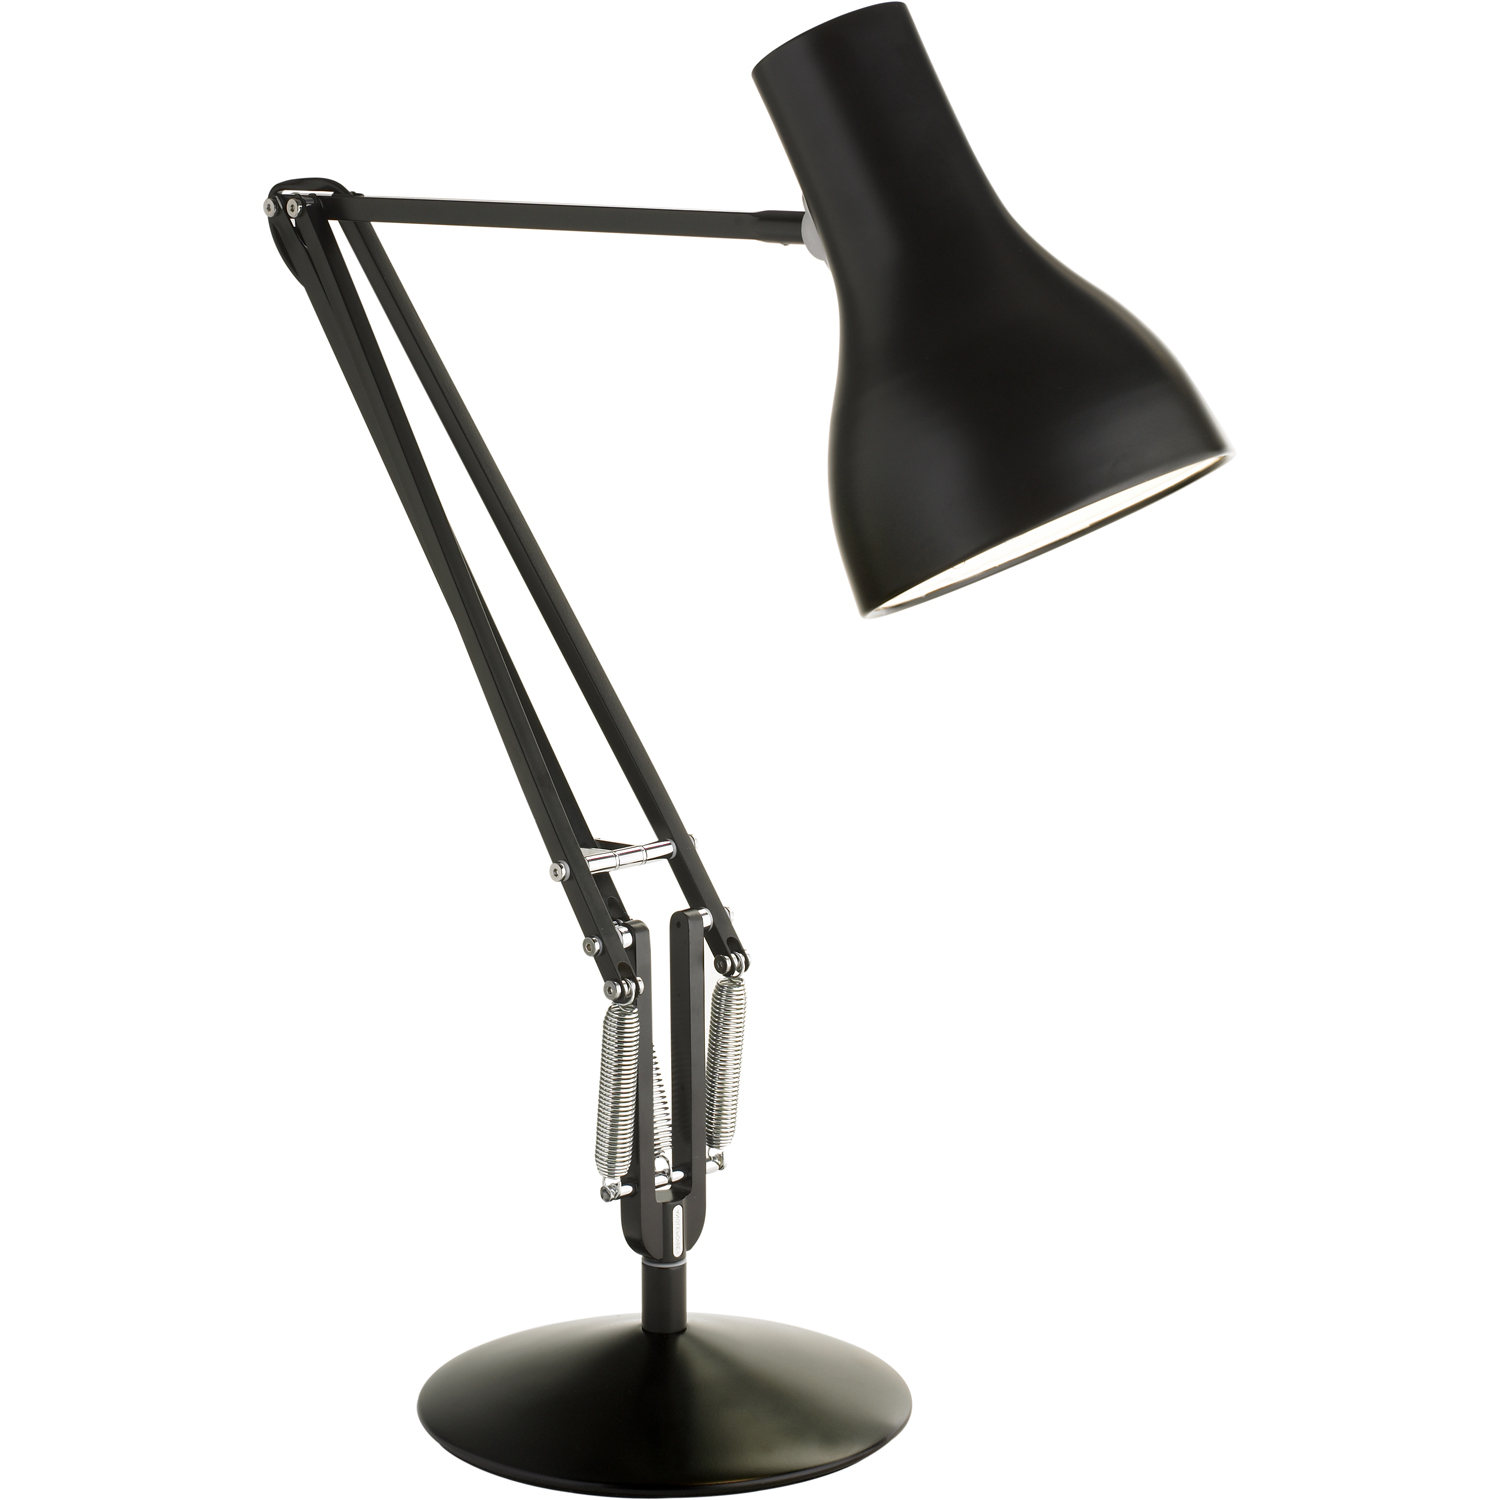 Anglepoise Lamp Nouns What Is An Anglepoise Lamp Called In America